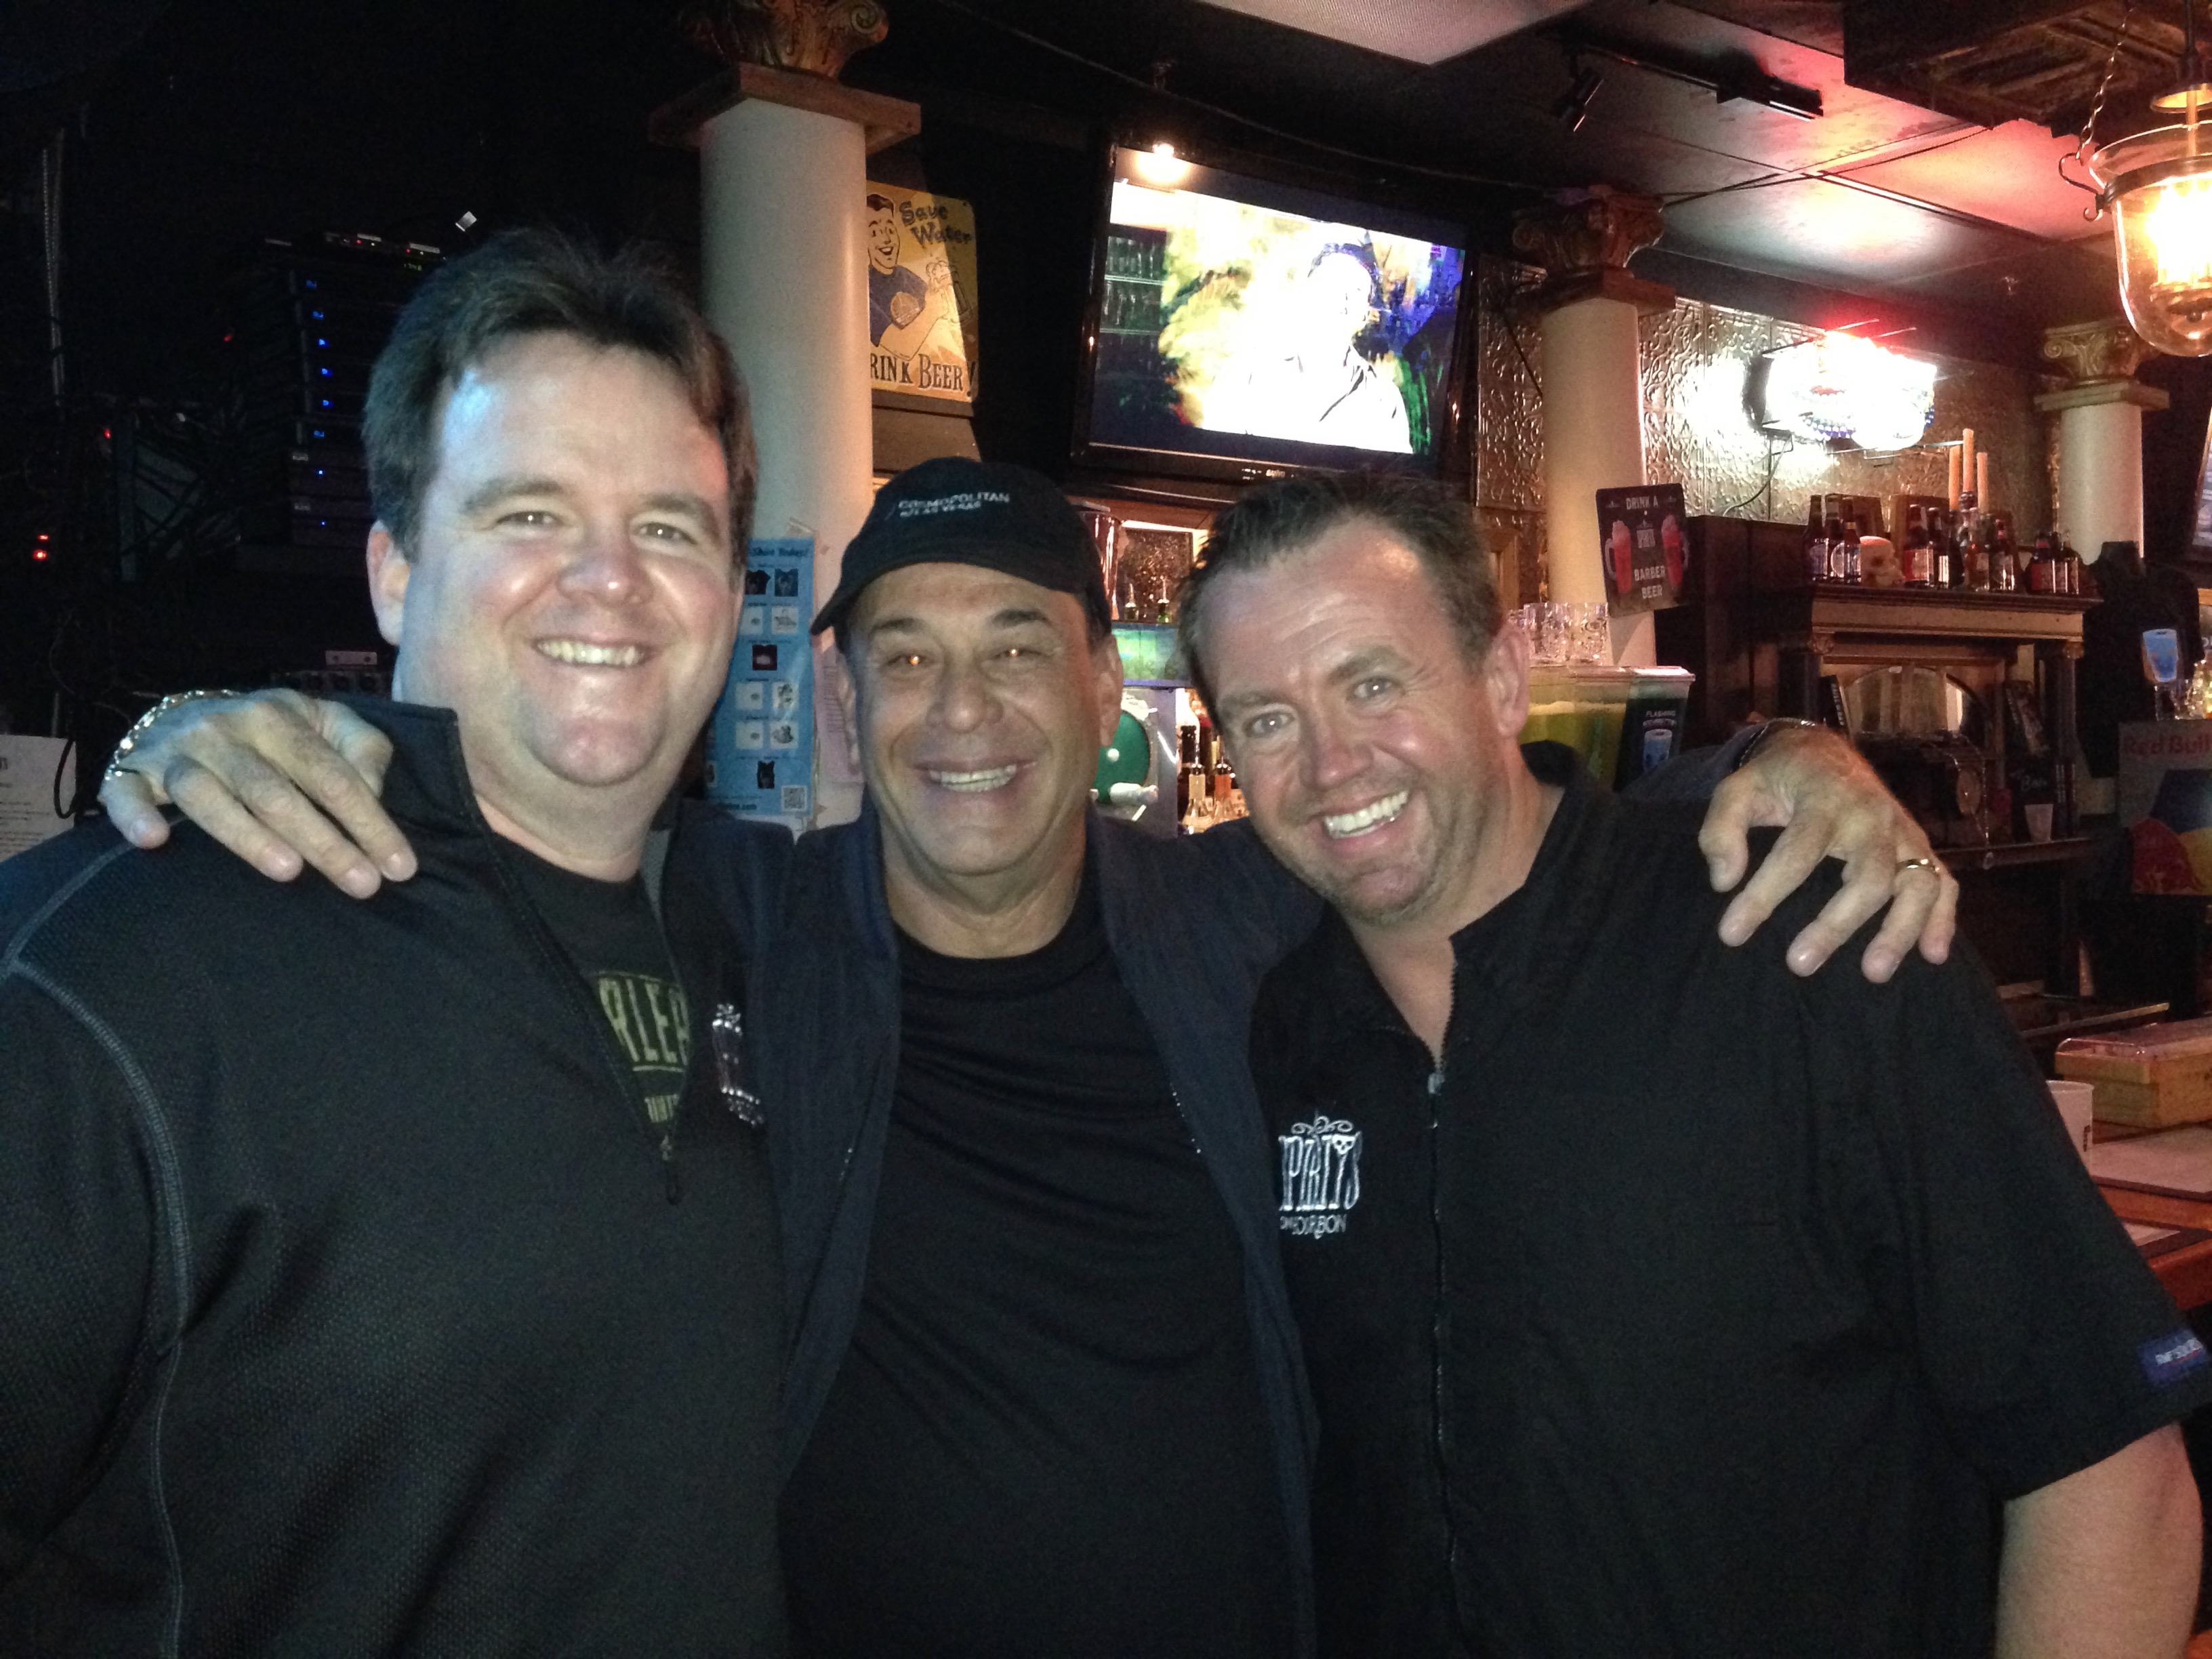 Jon Taffer (center) with Spirits on Bourbon owners Steve Smith (left) and Brad Bohannan (right).